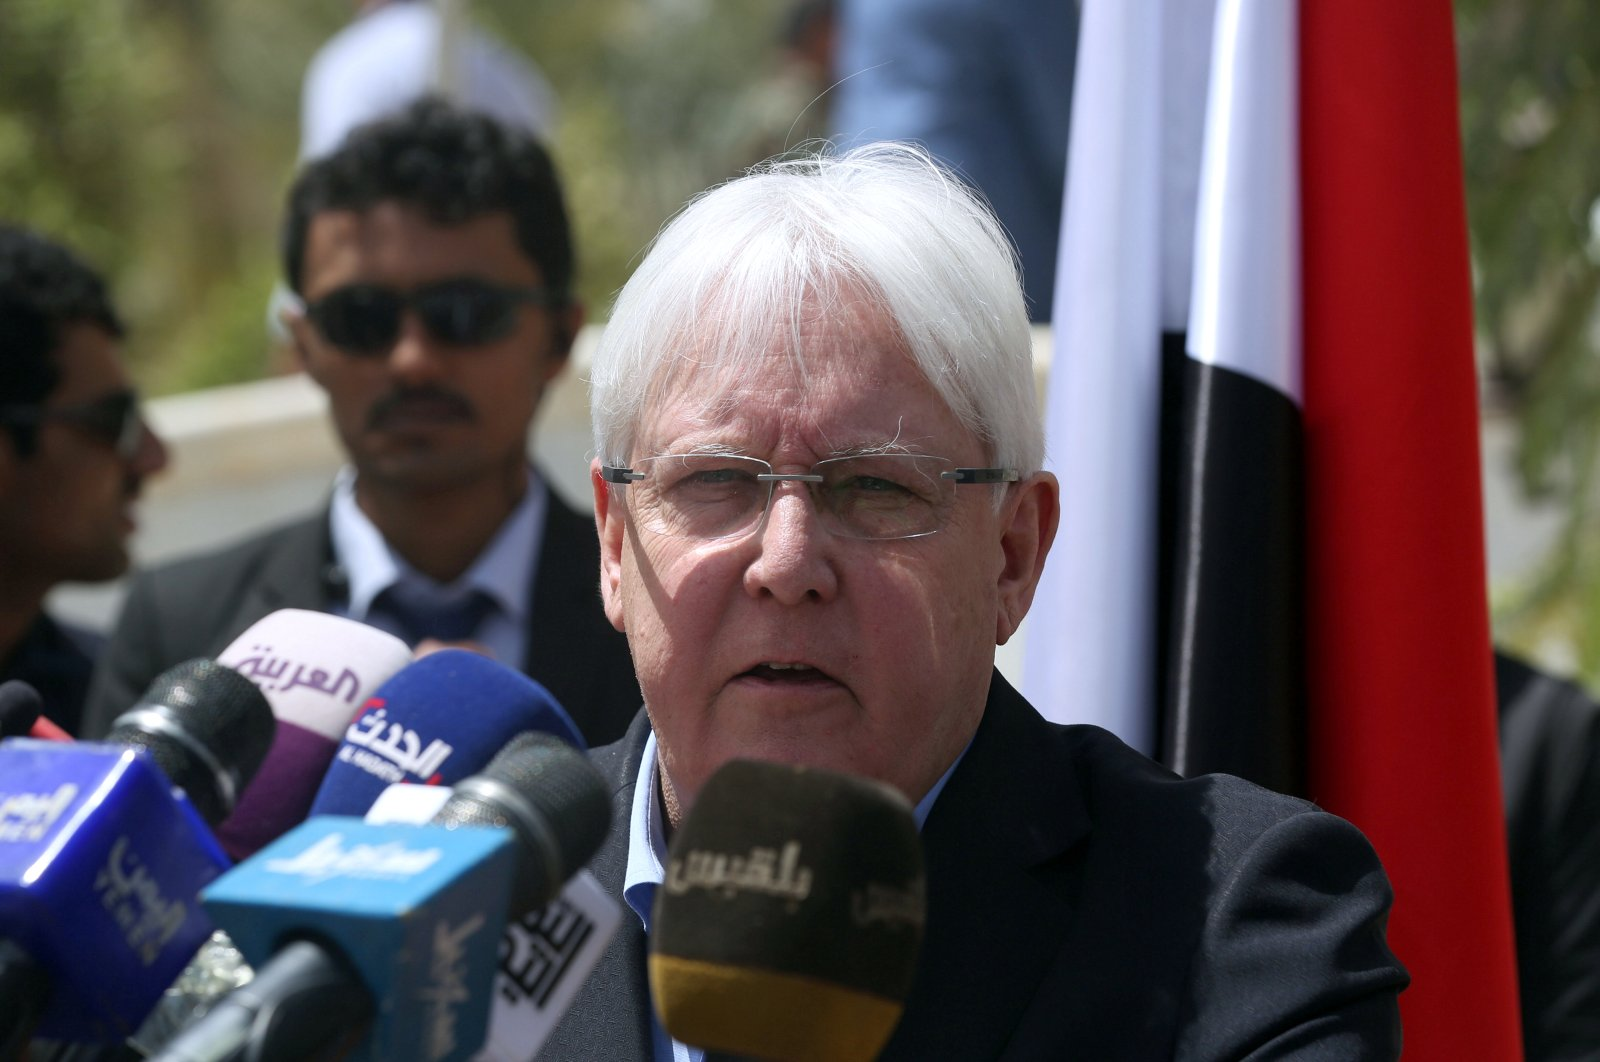 United Nations Special Envoy to Yemen Martin Griffiths, speaks during a news conference, in Marib, Yemen March 7, 2020. (Reuters Photo)